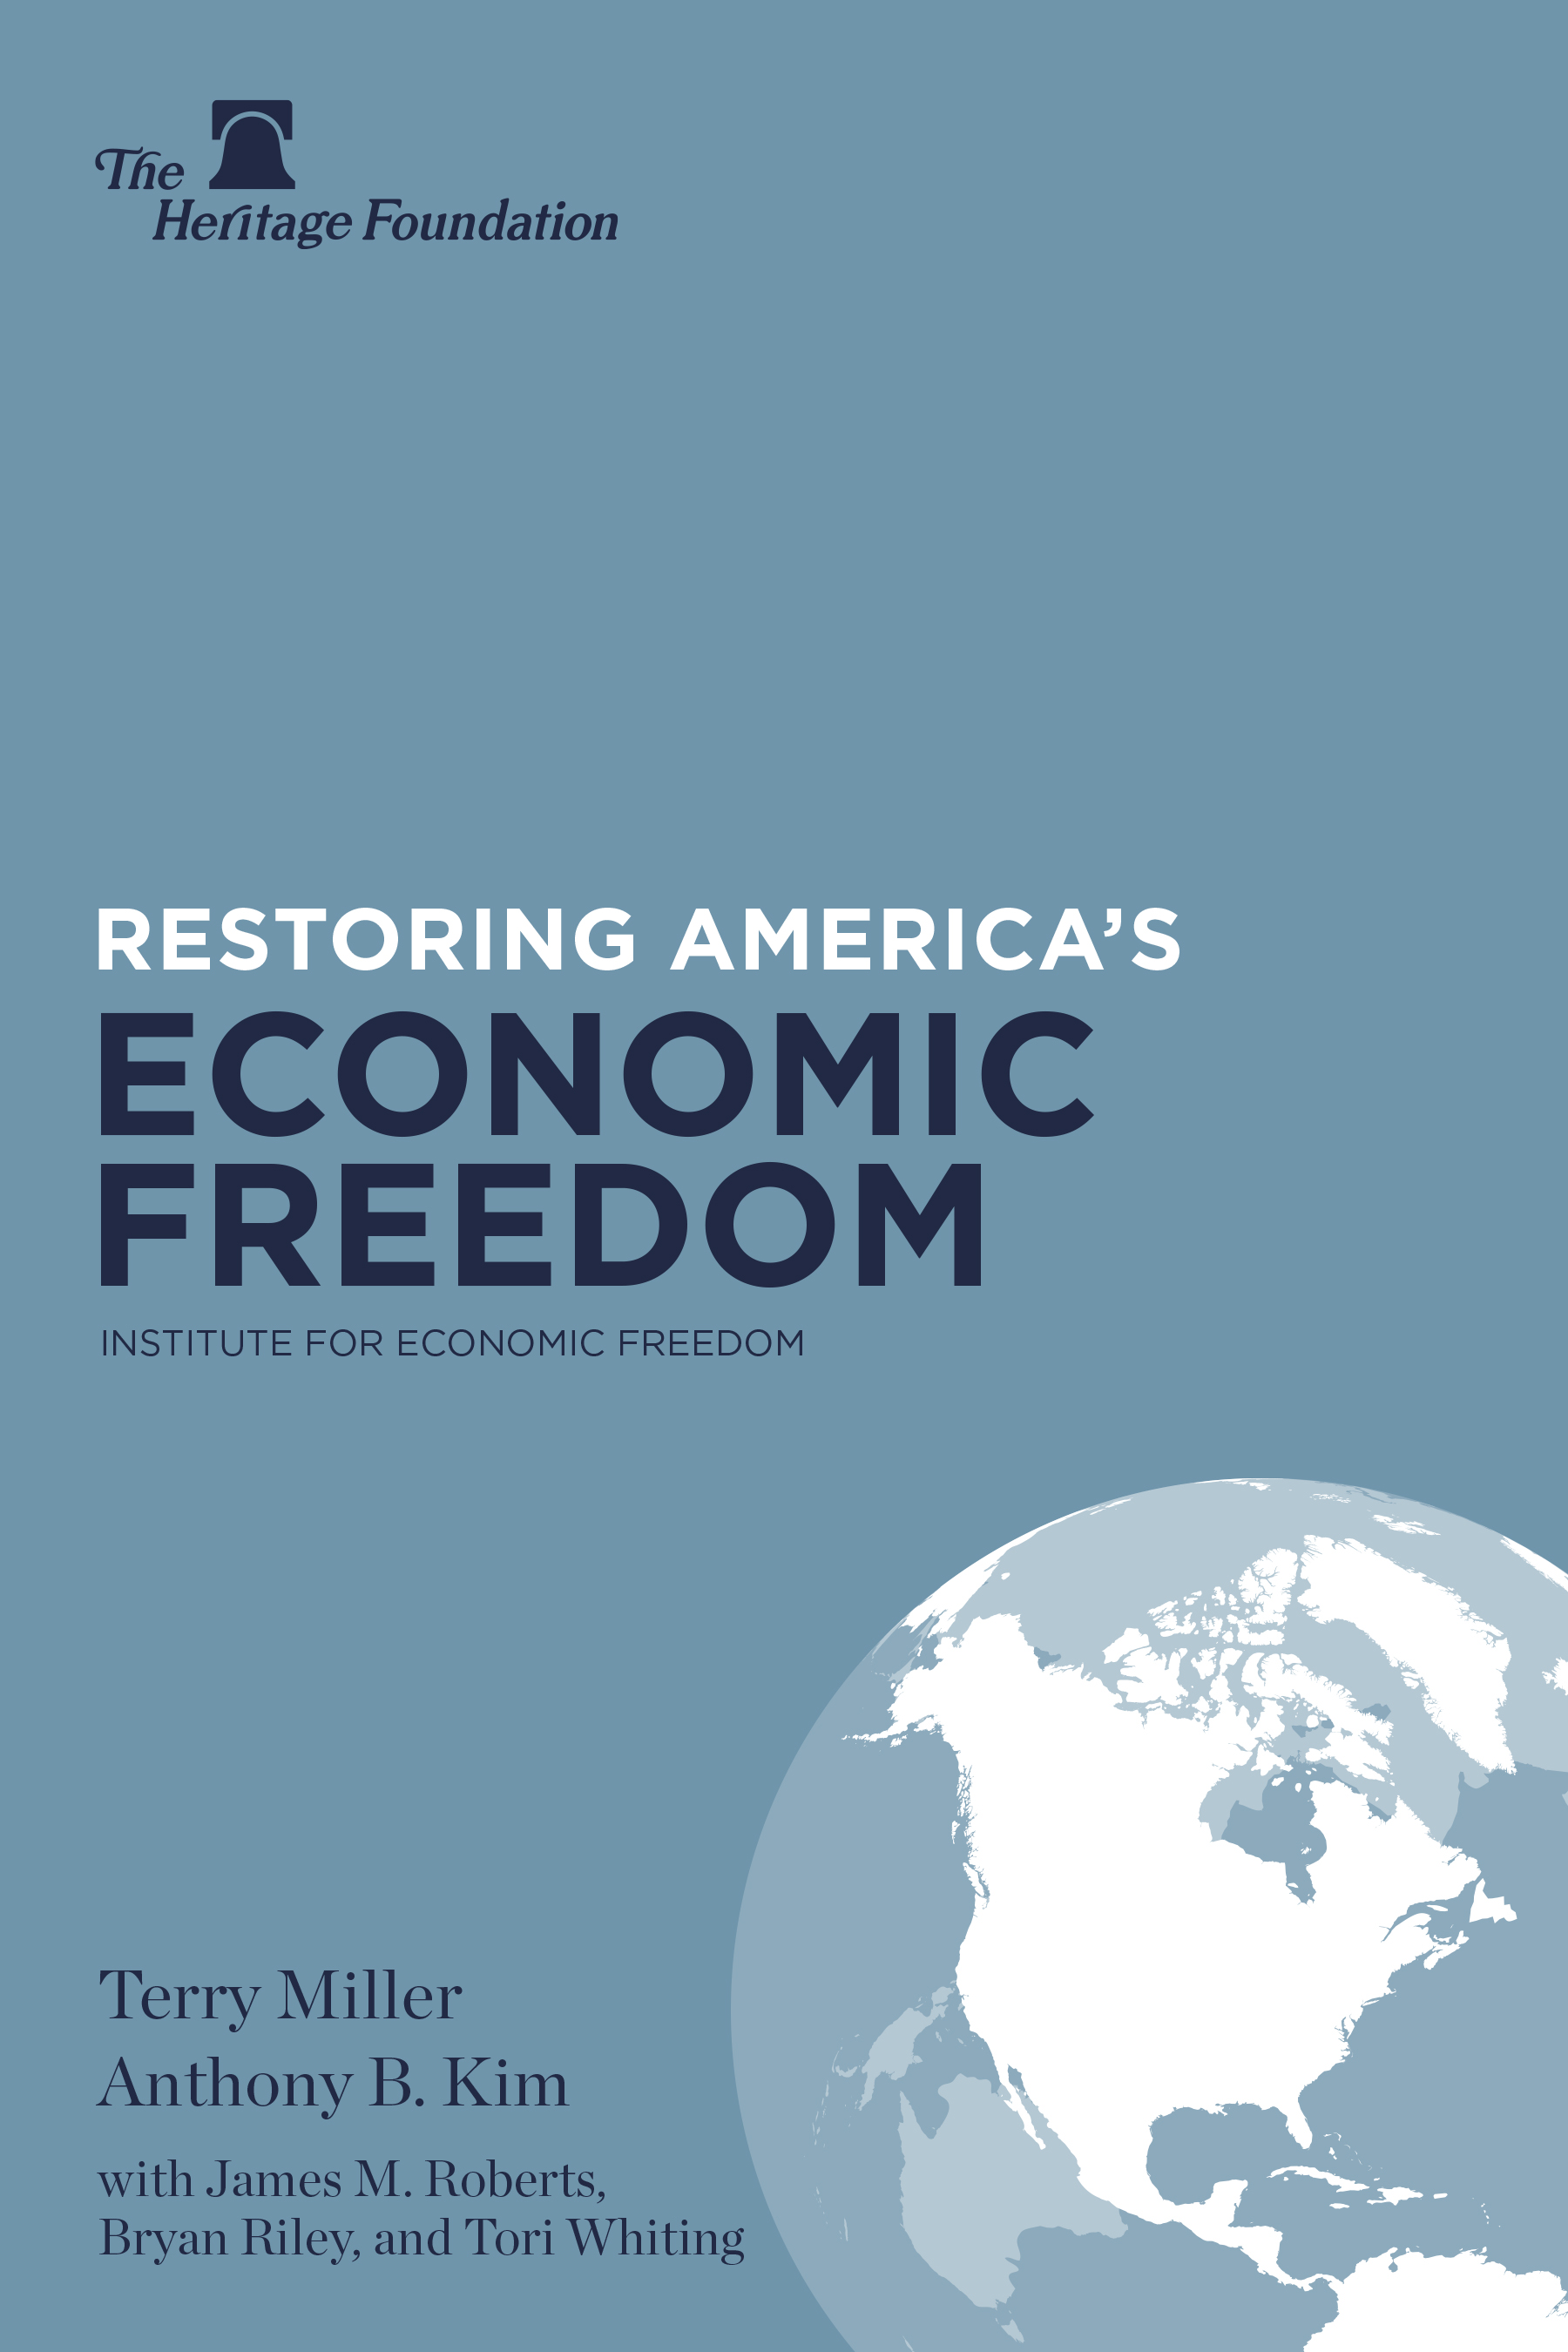 download index of economic freedom data maps and book